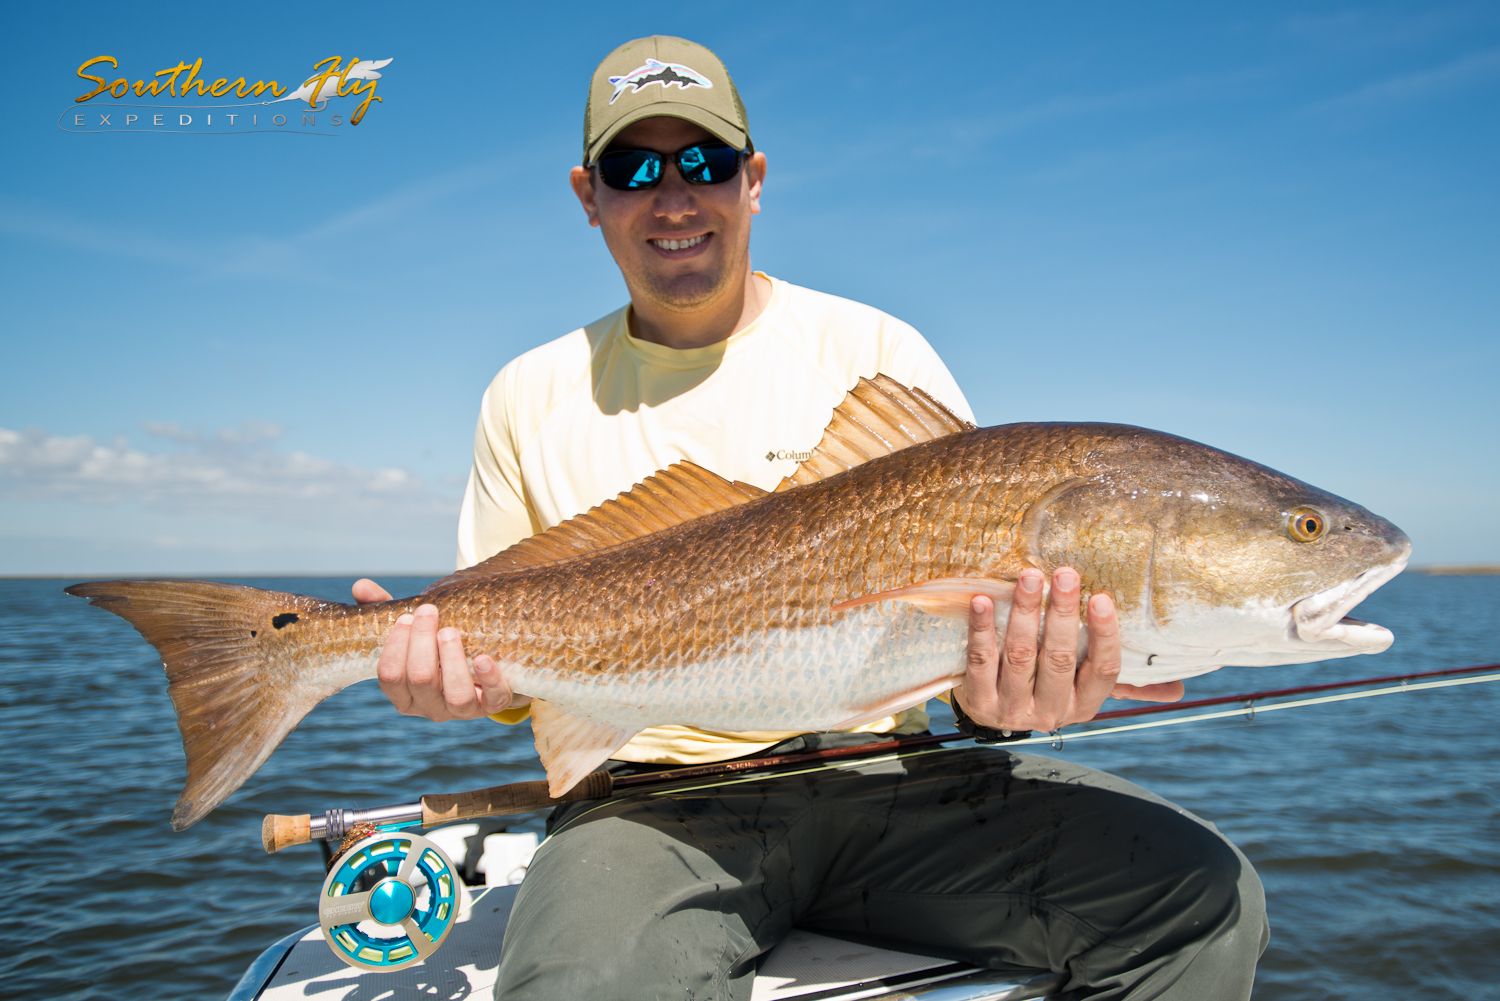 Fly Fishing Trip New Orleans with Southern Fly Expeditions